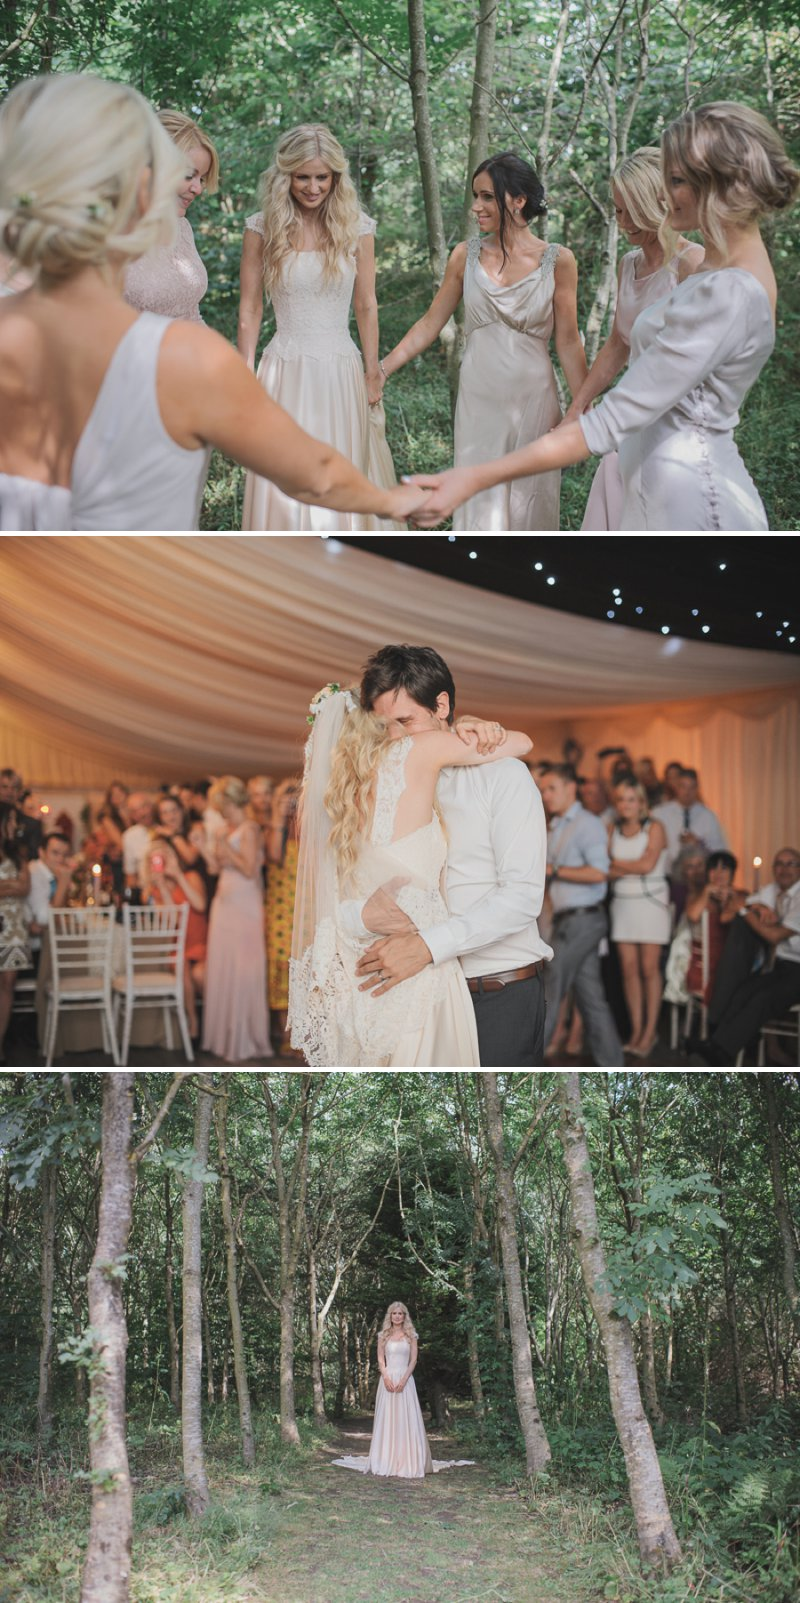 An Ethereal Summer Woodland Wedding At Hilton Court Gardens In Pembrokeshire Wales With A Silk Stephanie Allin Dress And An Amnesia Rose Bouquet Photographed By O&C Photography._0014